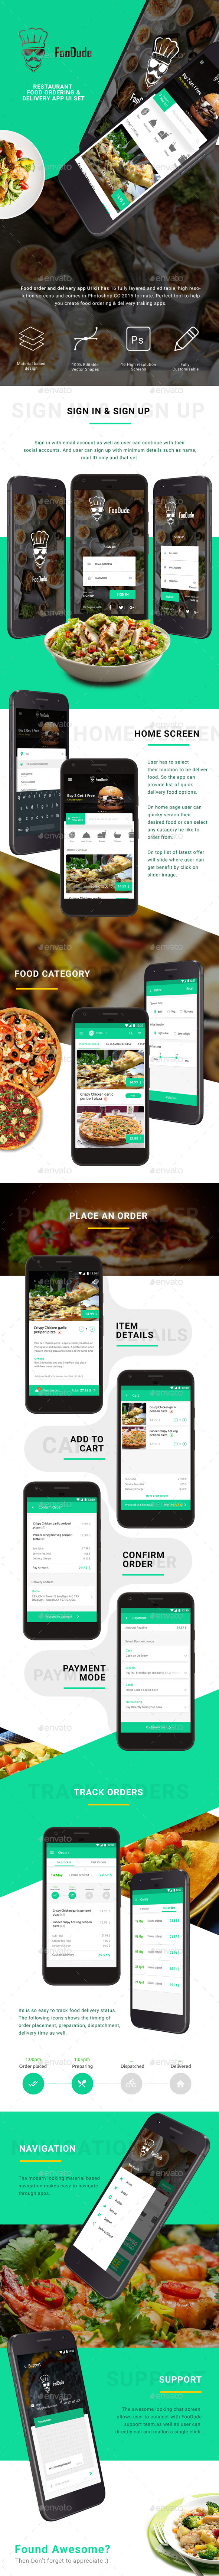 Food Ordering & Delivery App UI Set | FooDude - User Interfaces Web Elements